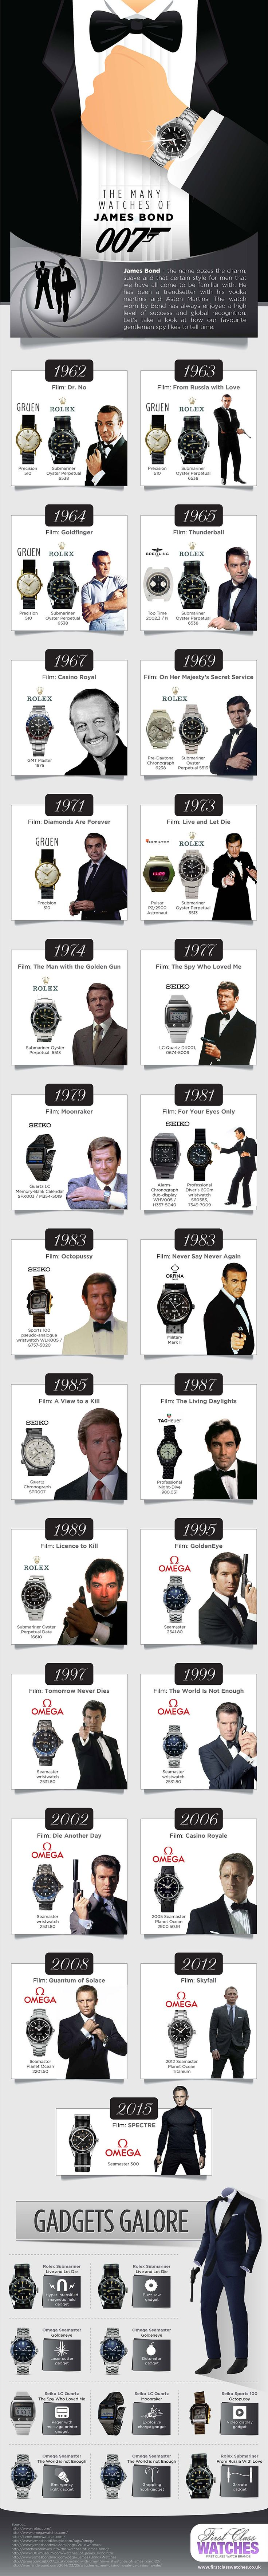 The Many Watches of James Bond - Spectre Infographic